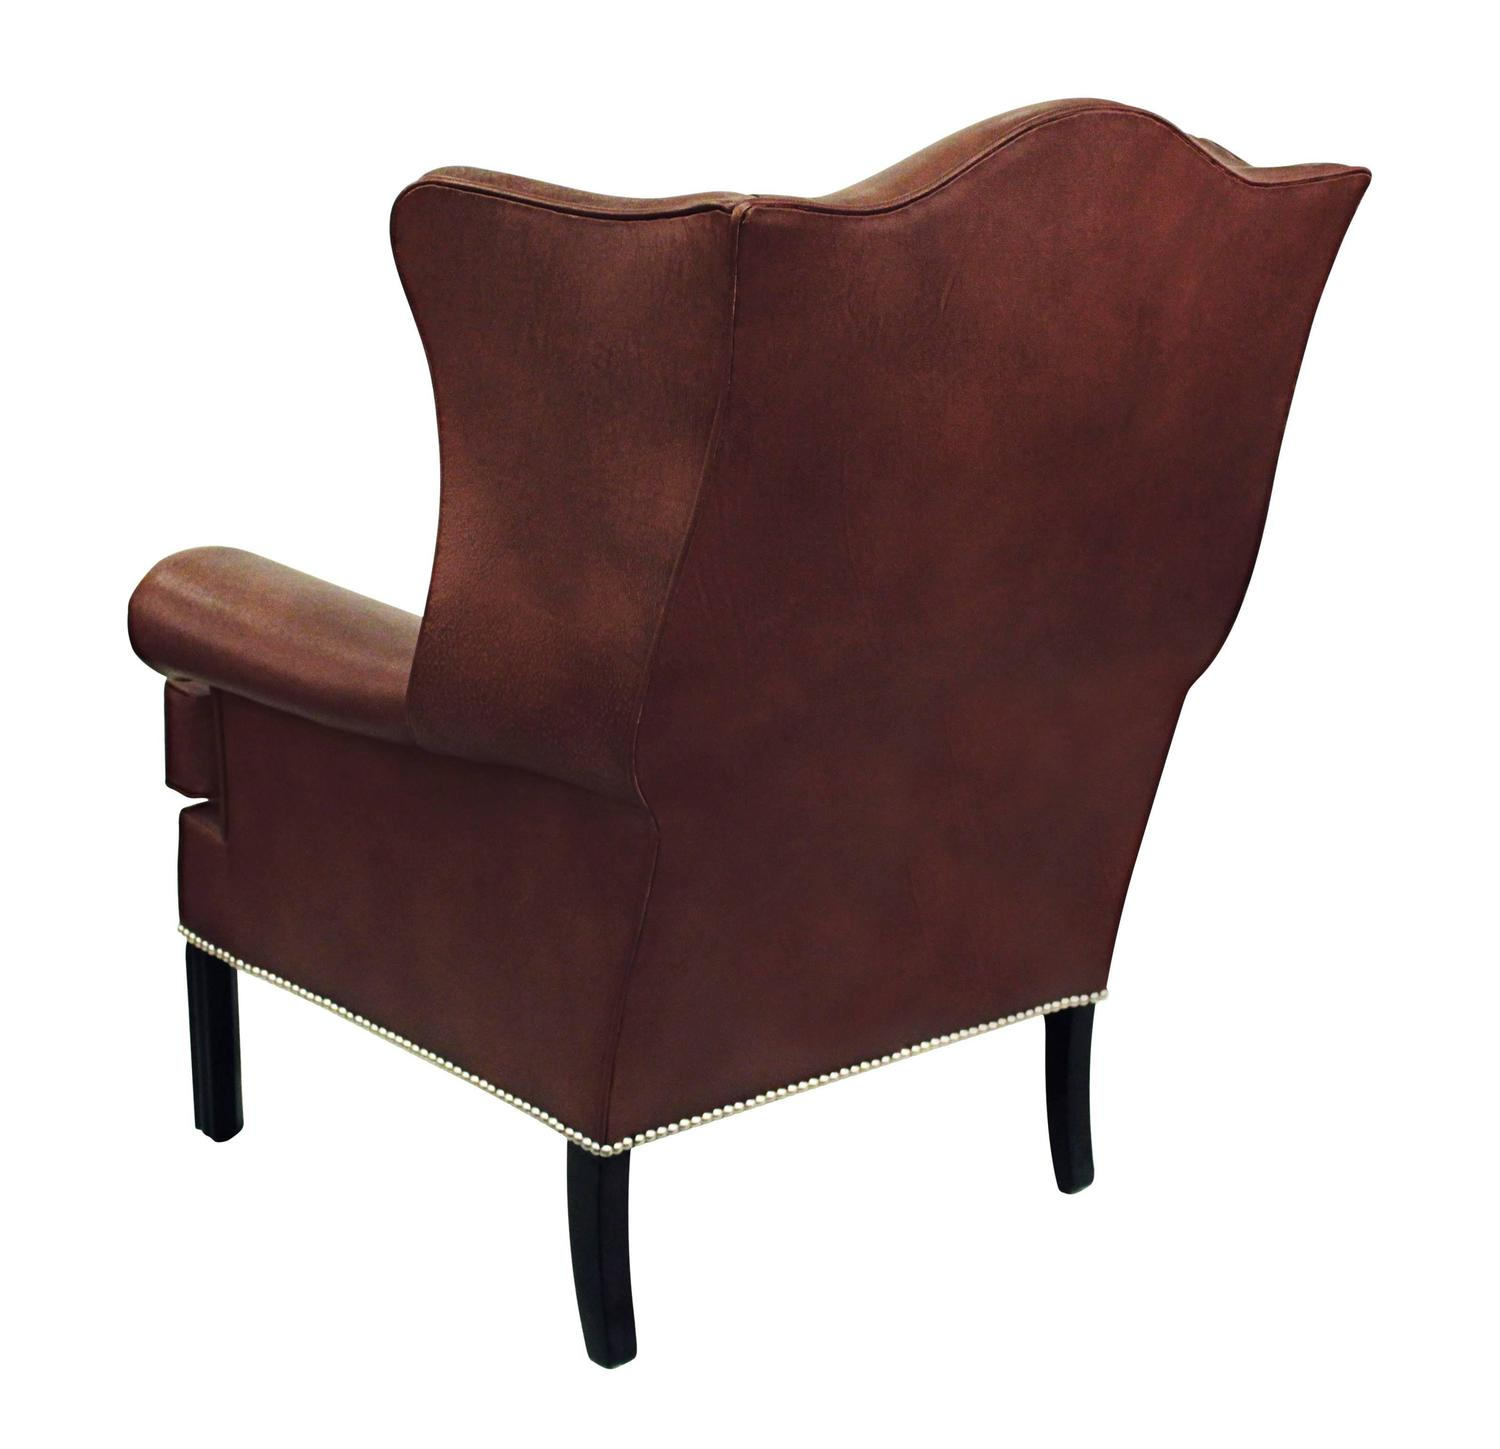 Small Scale Leather Wing Chair By Edward Wormley For